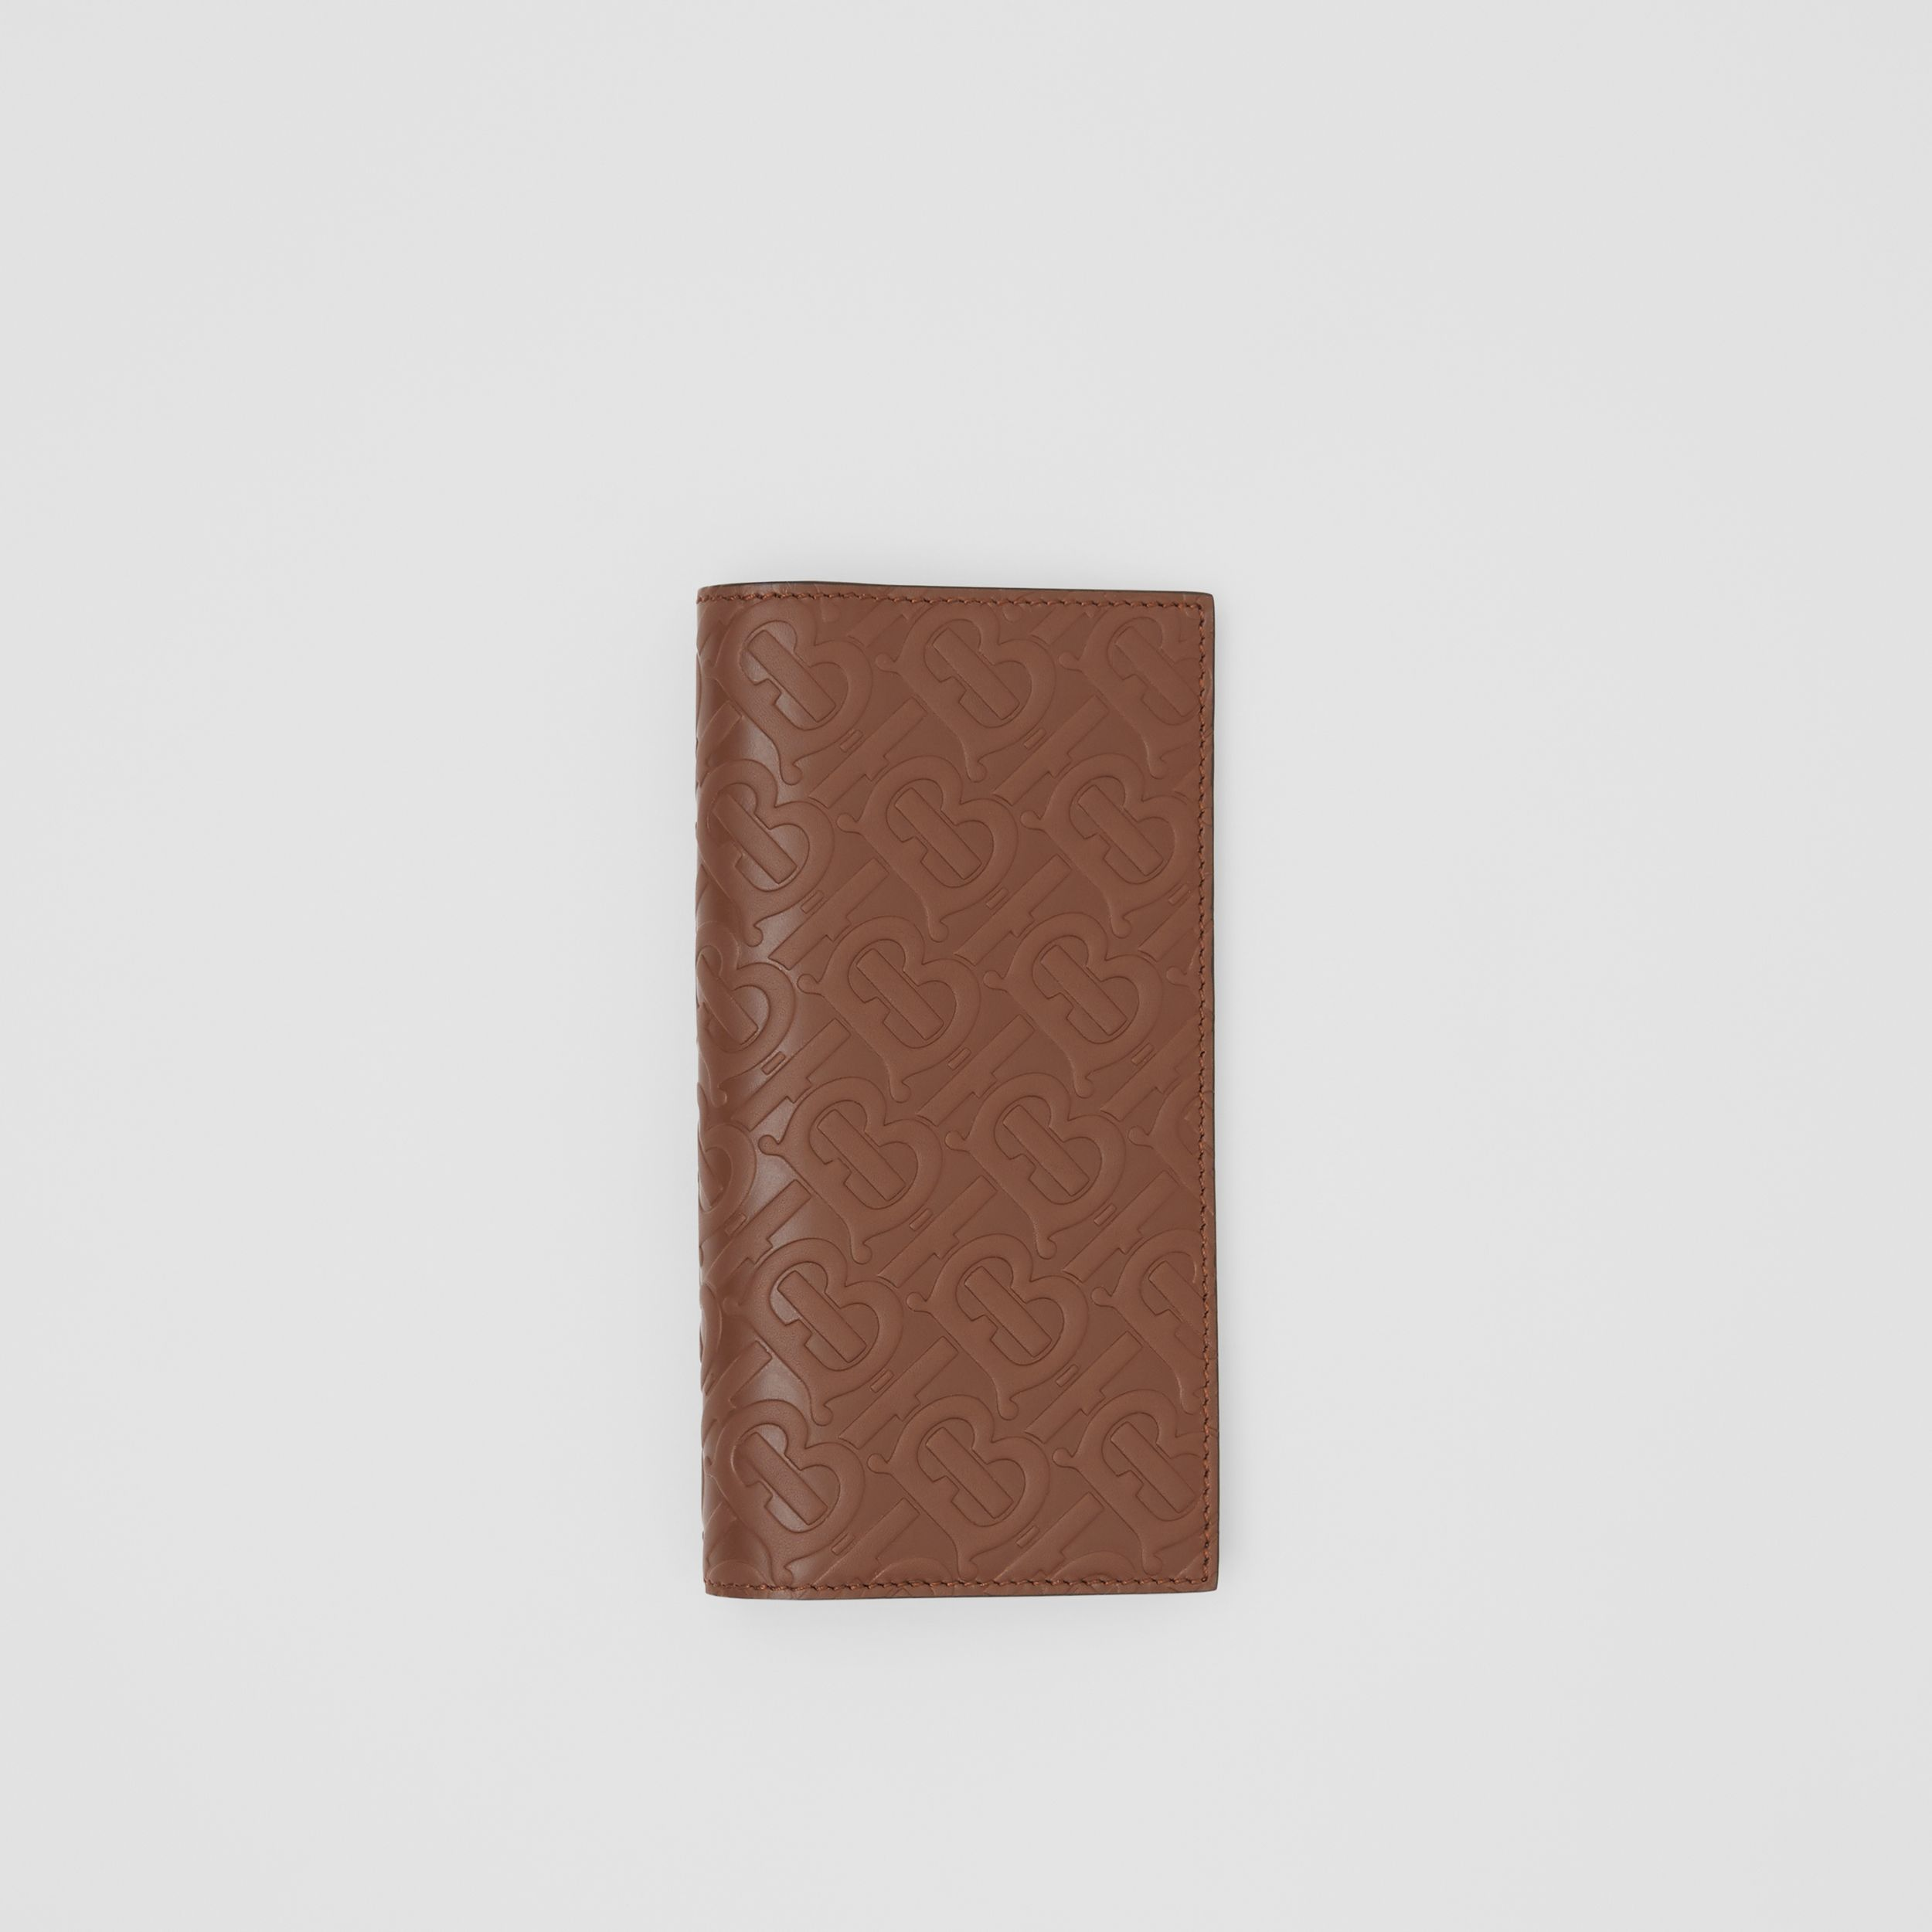 Monogram Leather Continental Wallet in Dark Tan | Burberry - 3